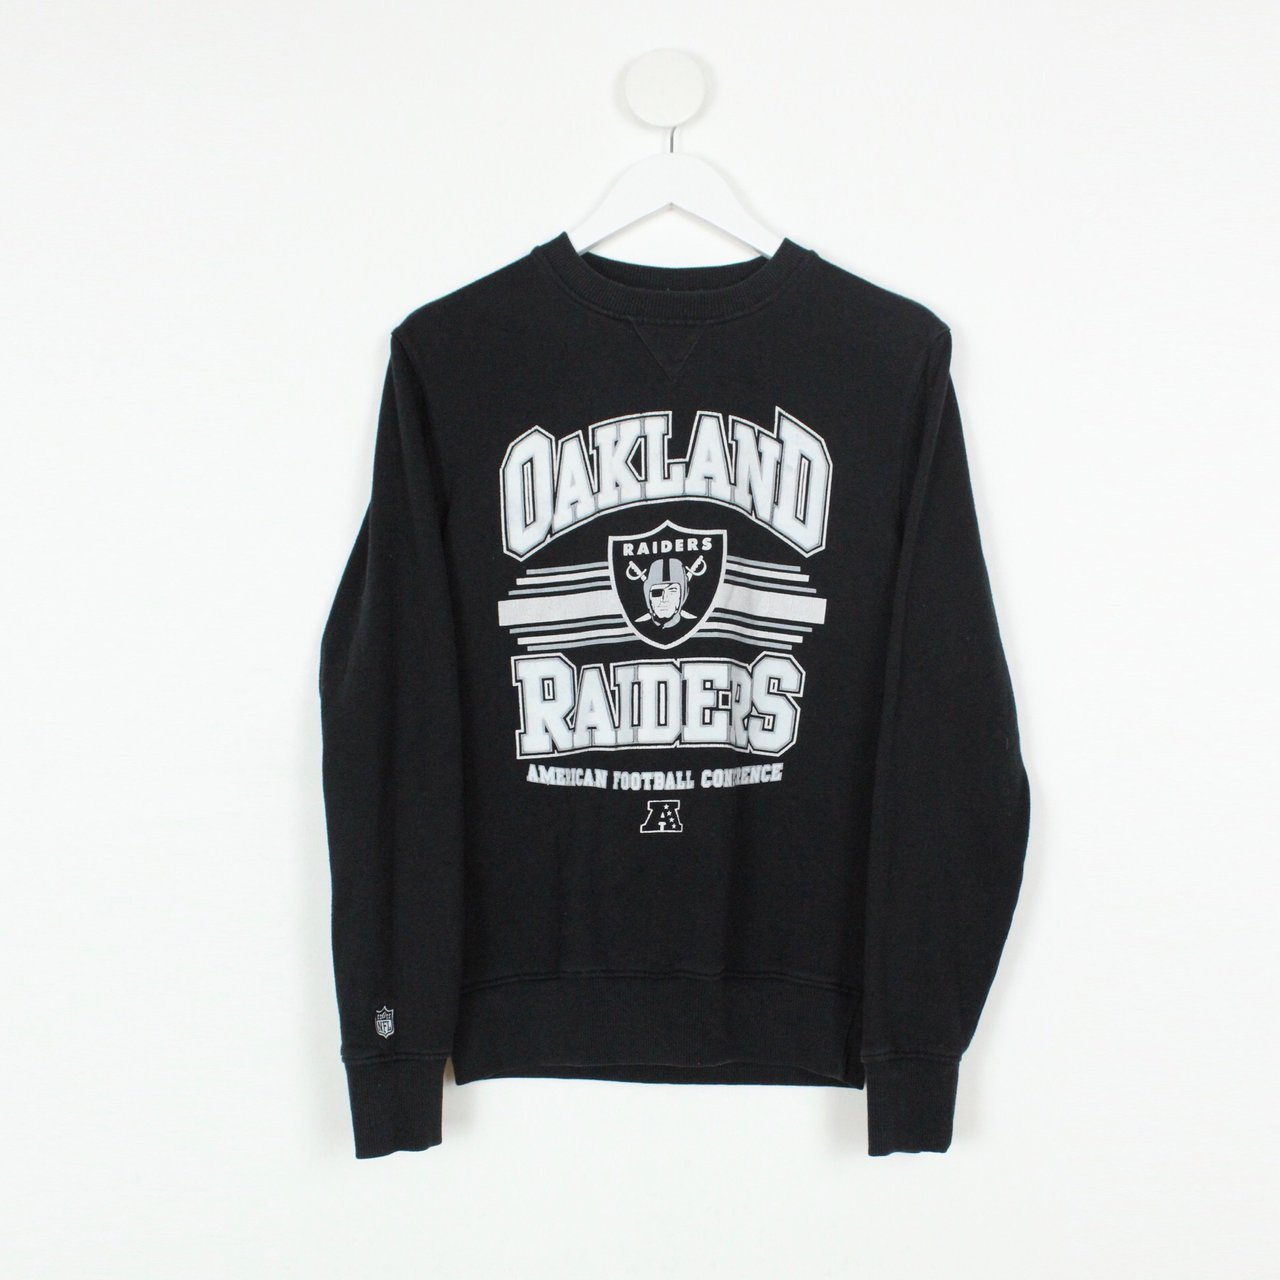 f2446cd9816 Men s Vintage NFL Oakland Raiders Sweatshirt Black - Size a - Depop